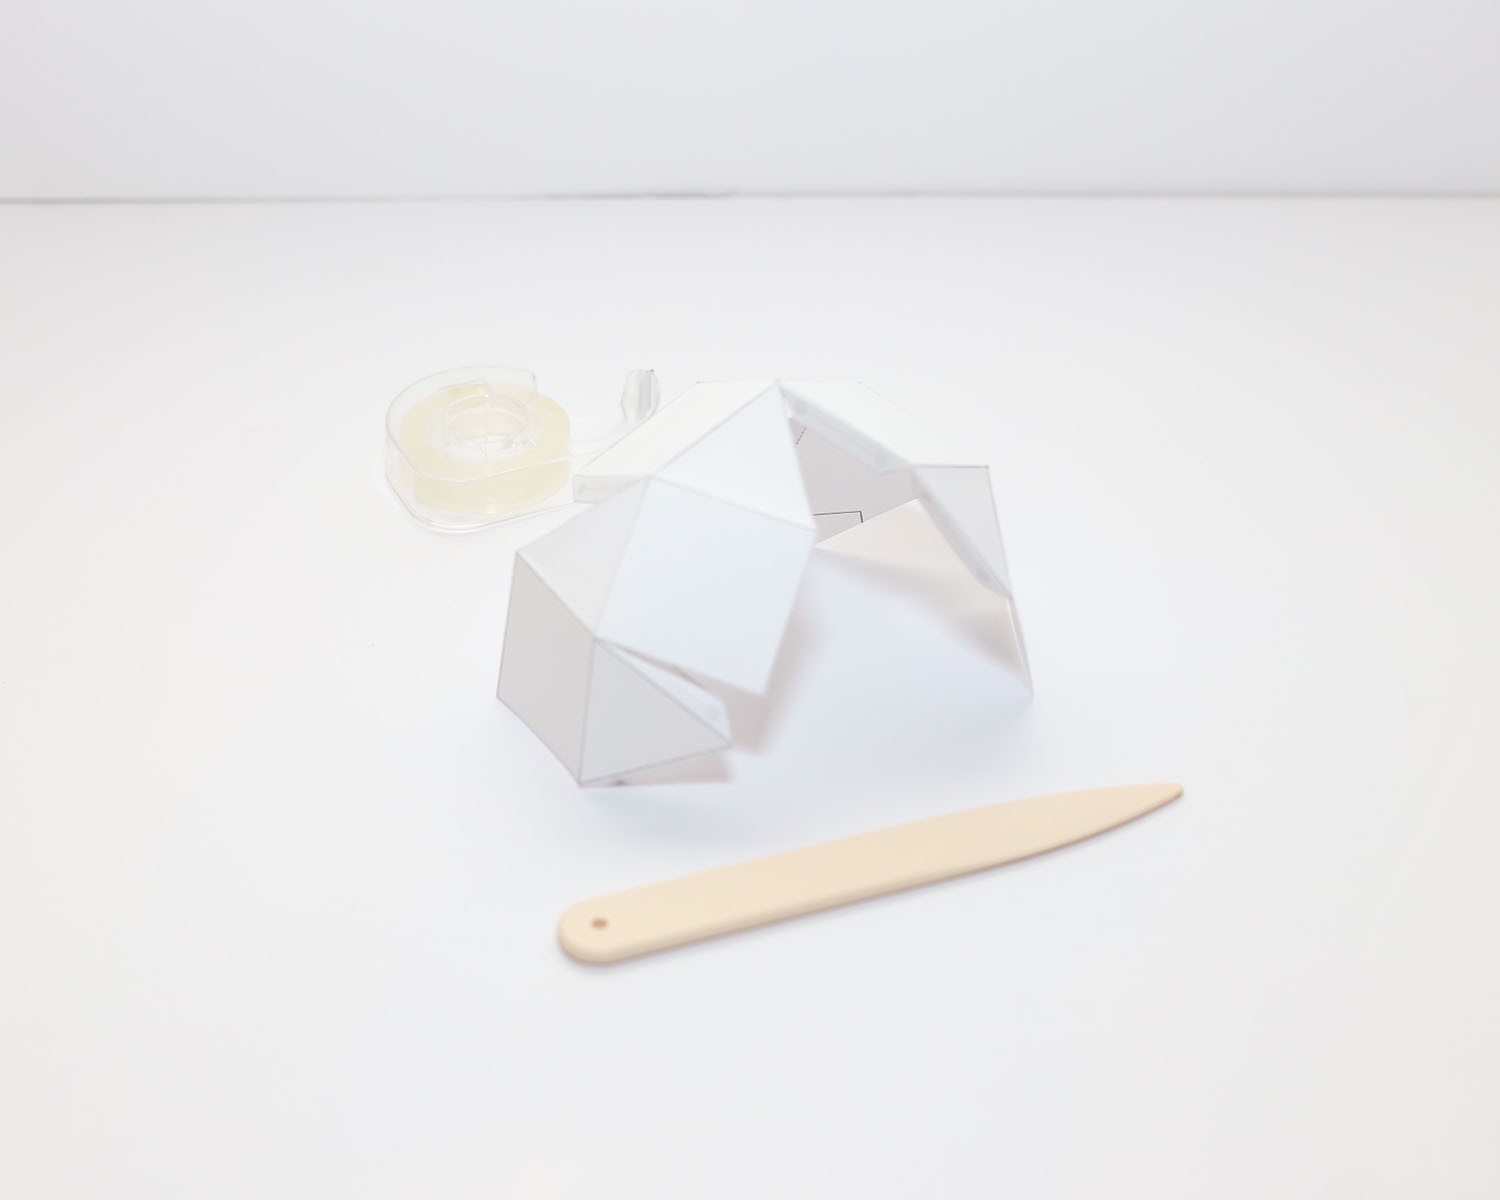 folding the geometric paper template for candle making